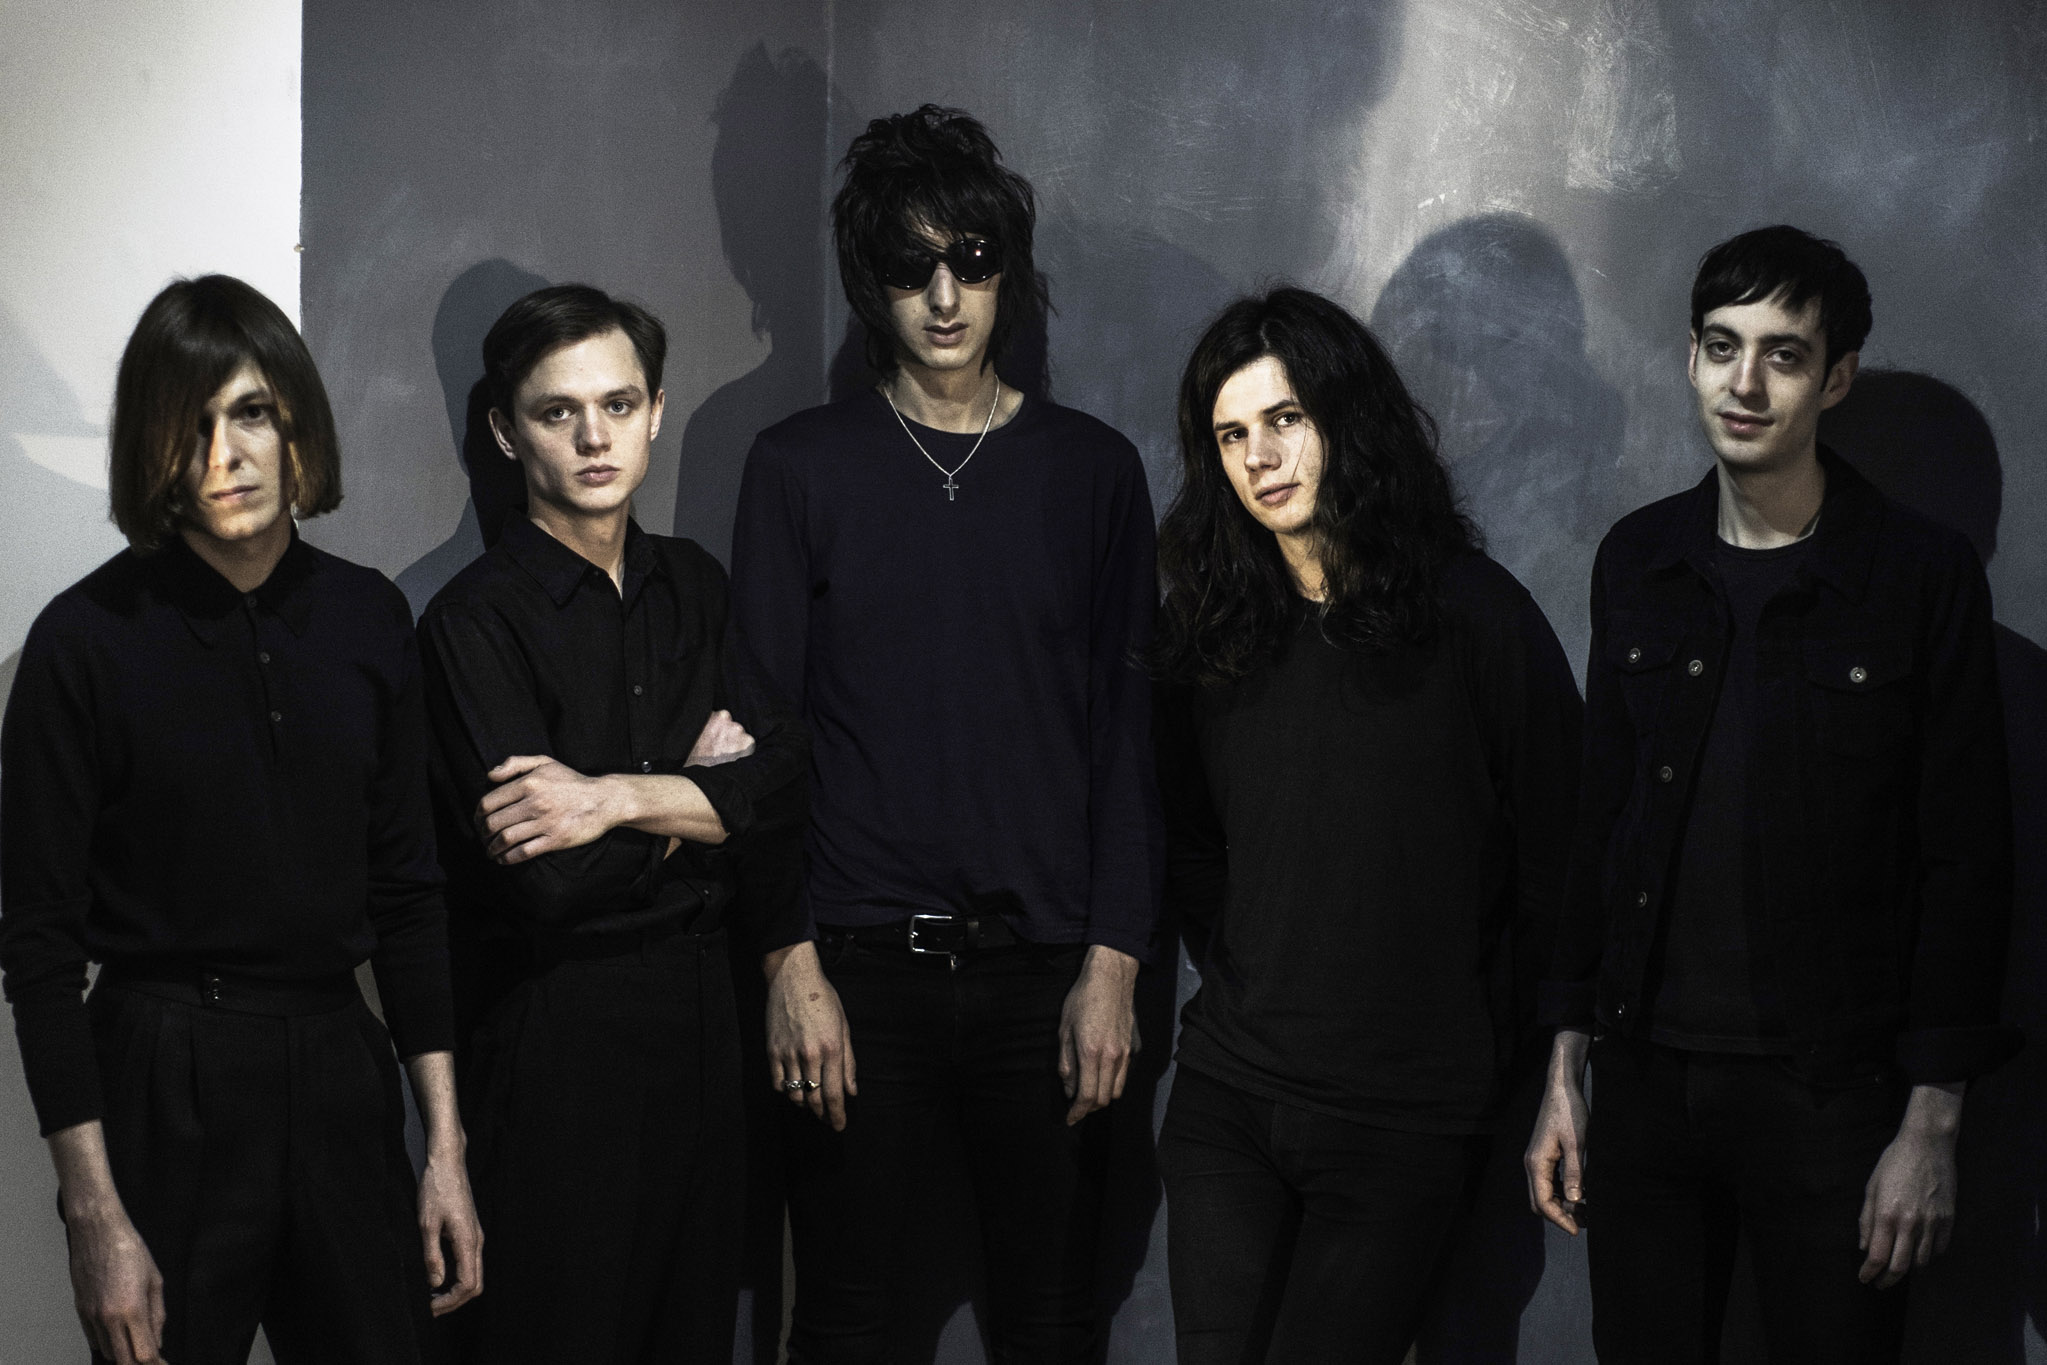 In and out of sight: The Horrors